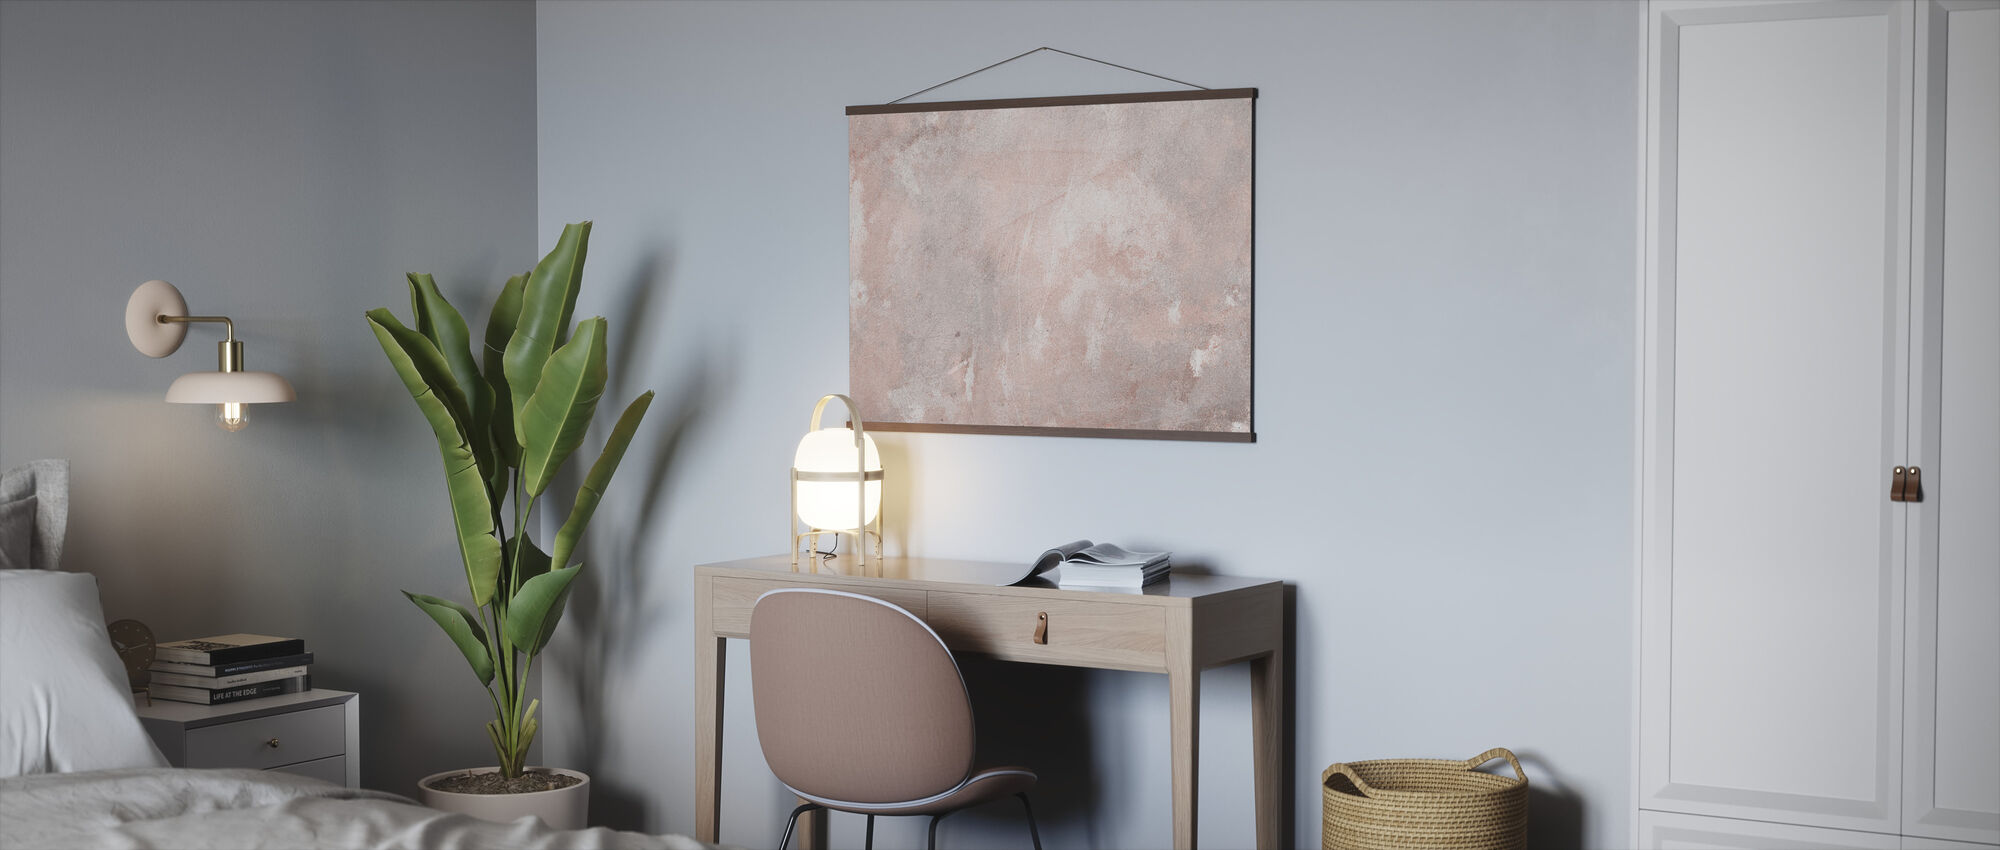 Soft Grunge Stone Wall - Poster - Office